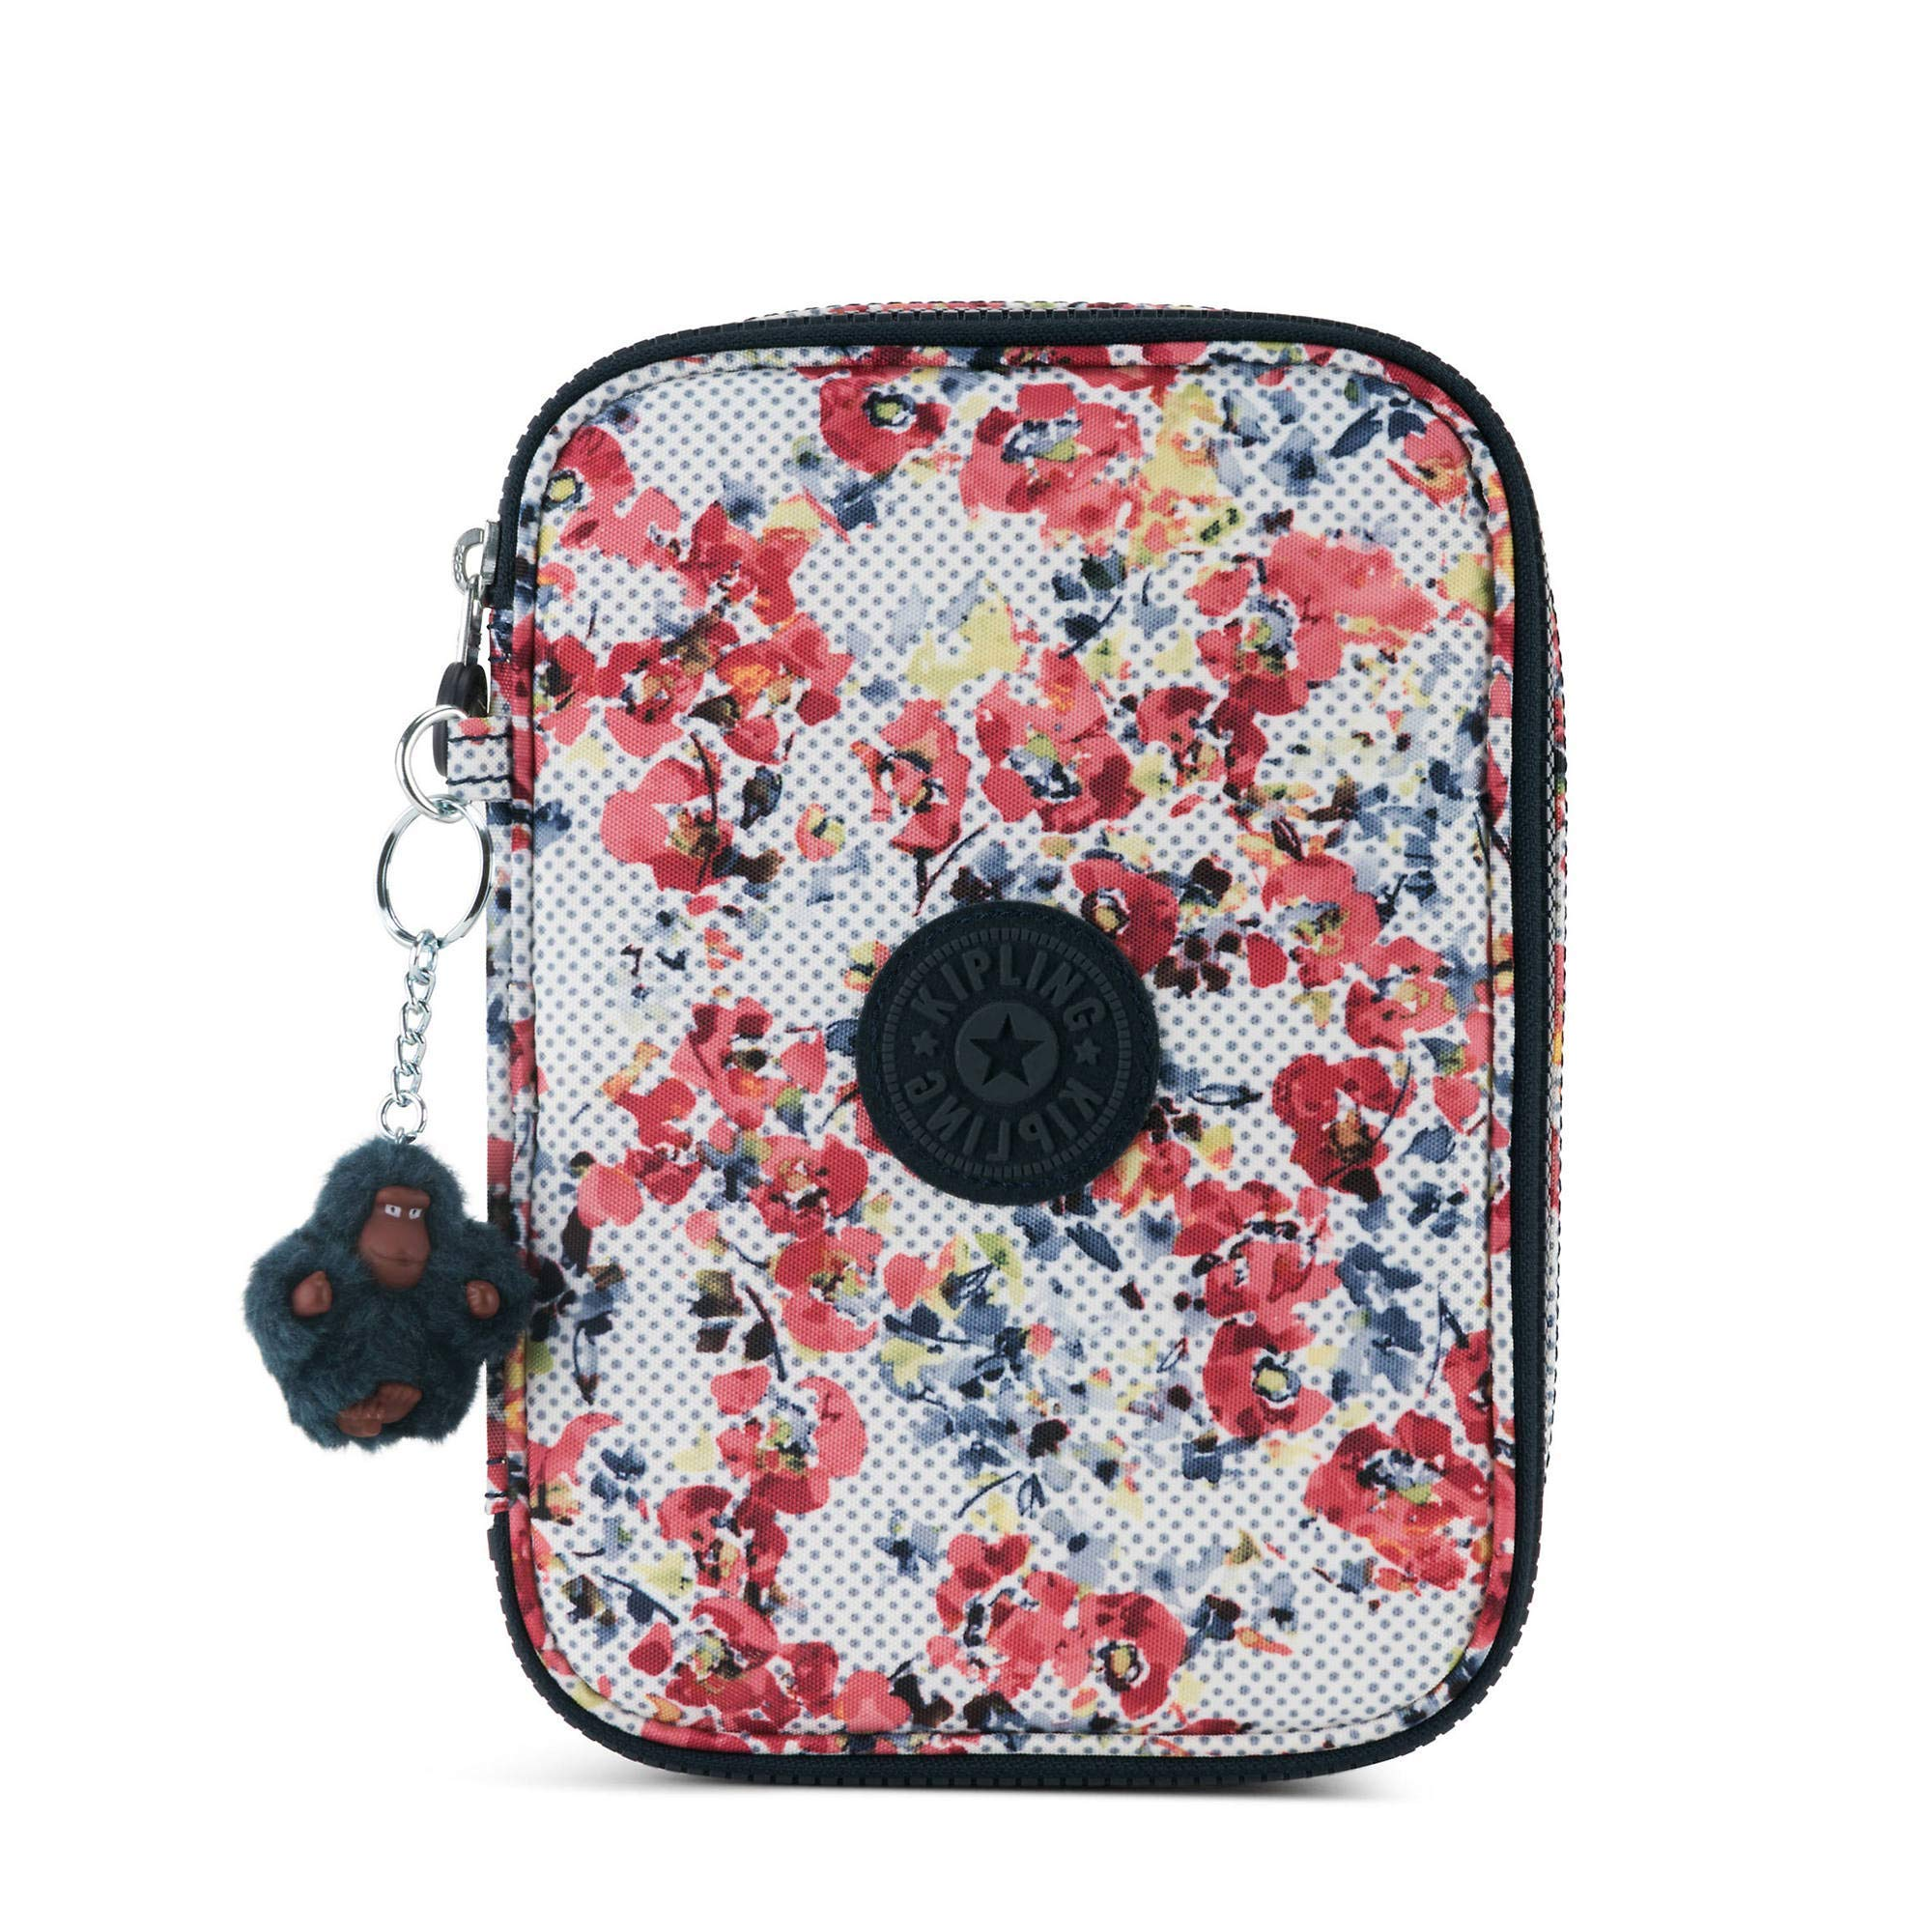 Kipling 100 Pens Mettalic (Busy Blossoms, One Size)